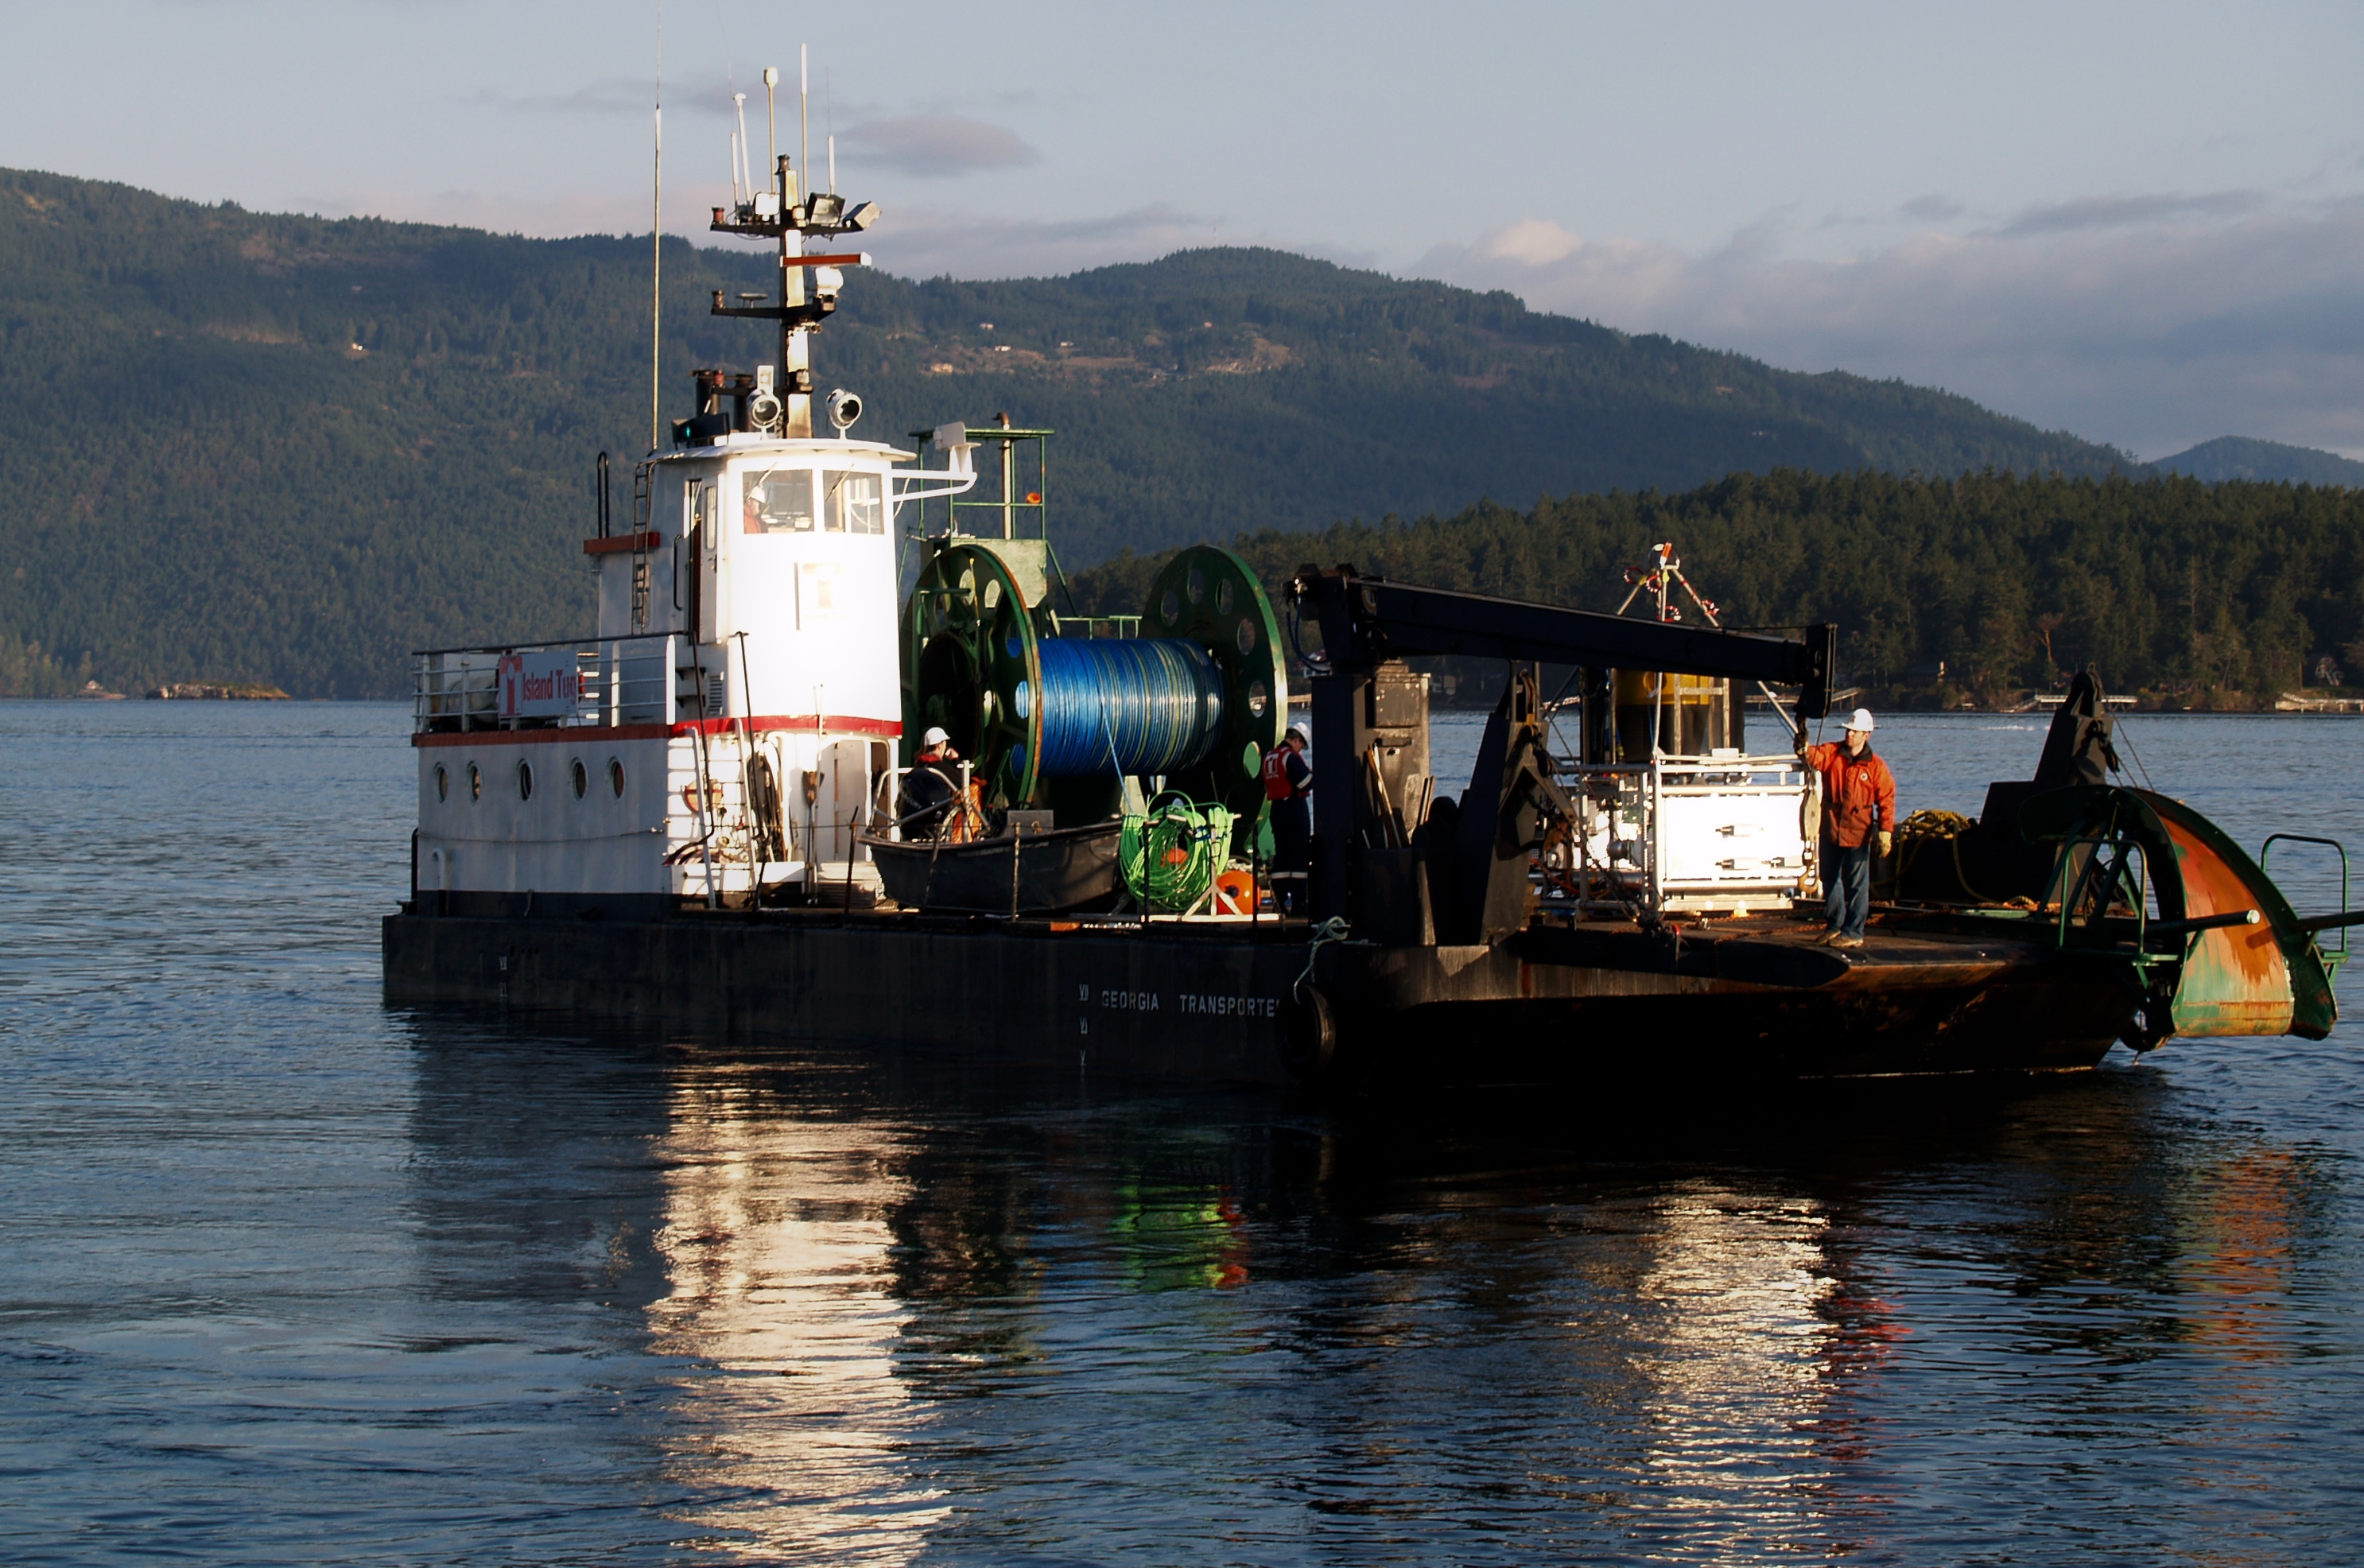 Island Tug's Georgia Transporter departs Swartz Bay with NEPTUNE Canada's Vertical Profiler System (VPS) and related equipment loaded on deck, 19 April 2010.